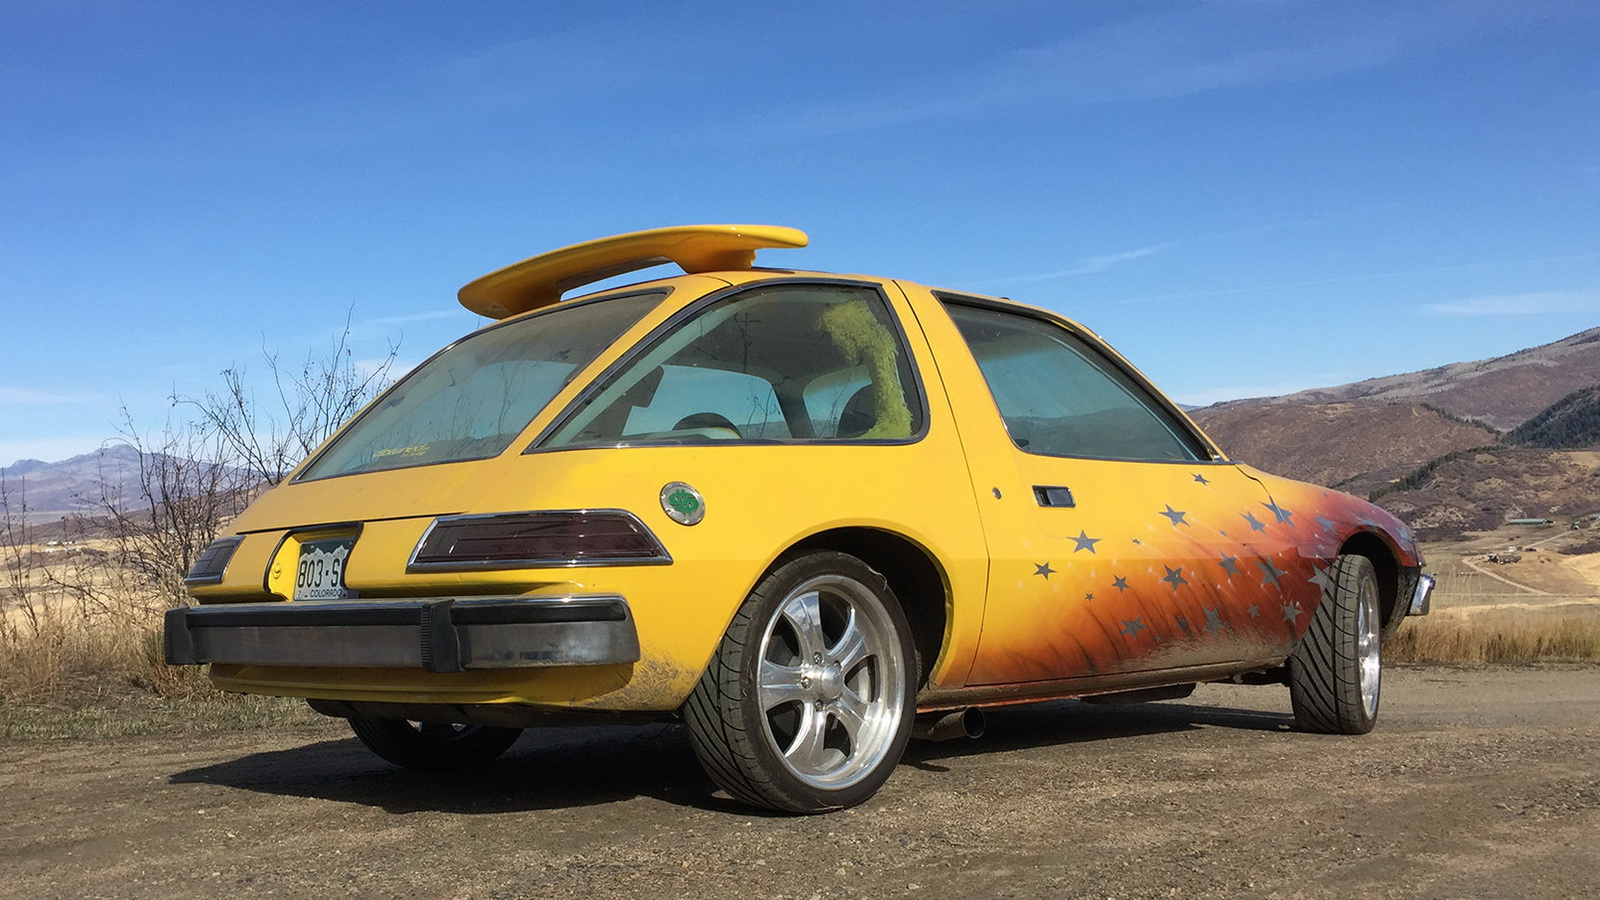 AMC_Pacer_Pimp_My_Ride_03